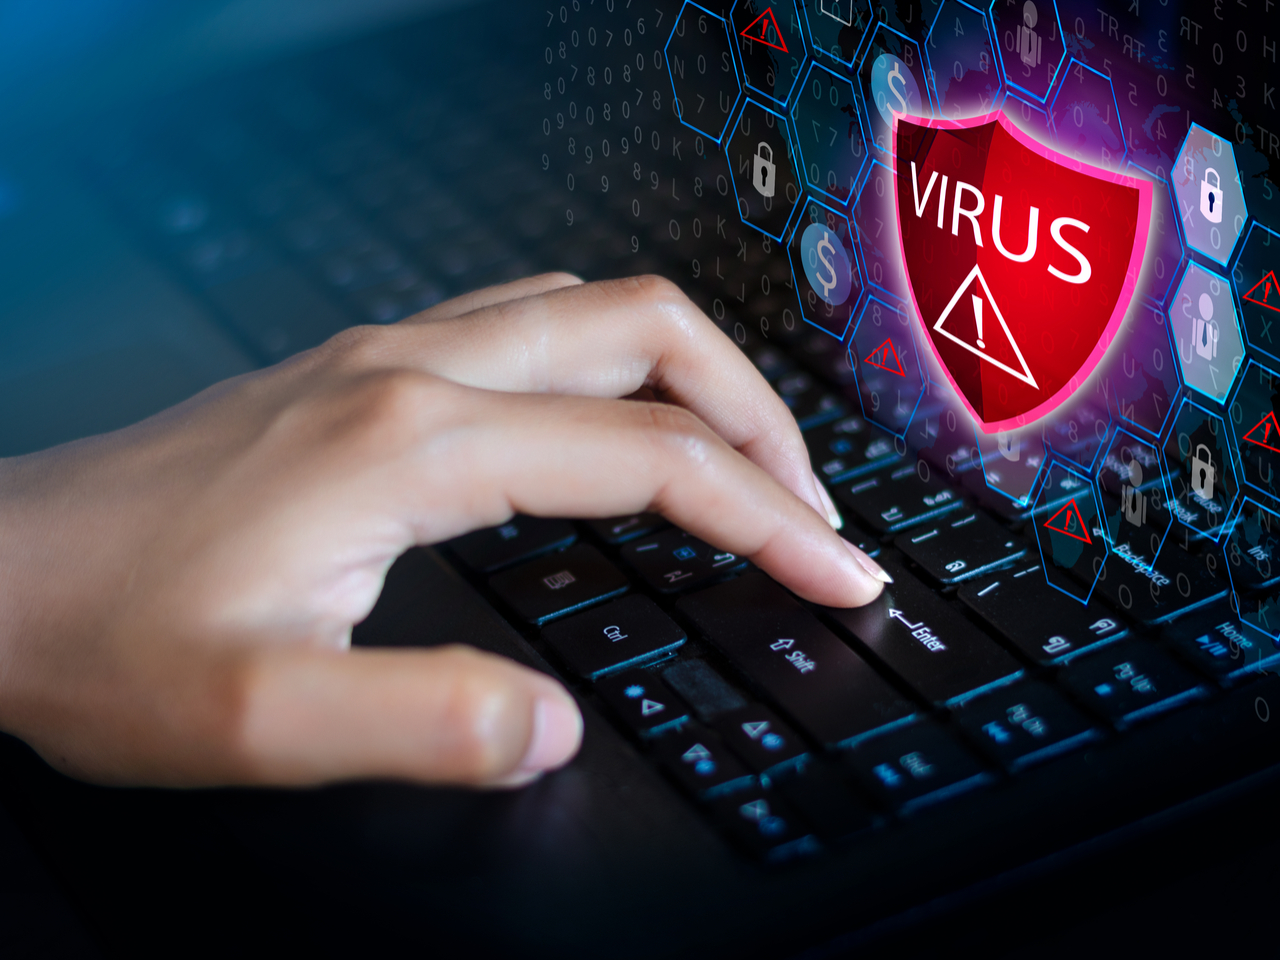 10 Tips To Protect Your Computer From Viruses And Malware